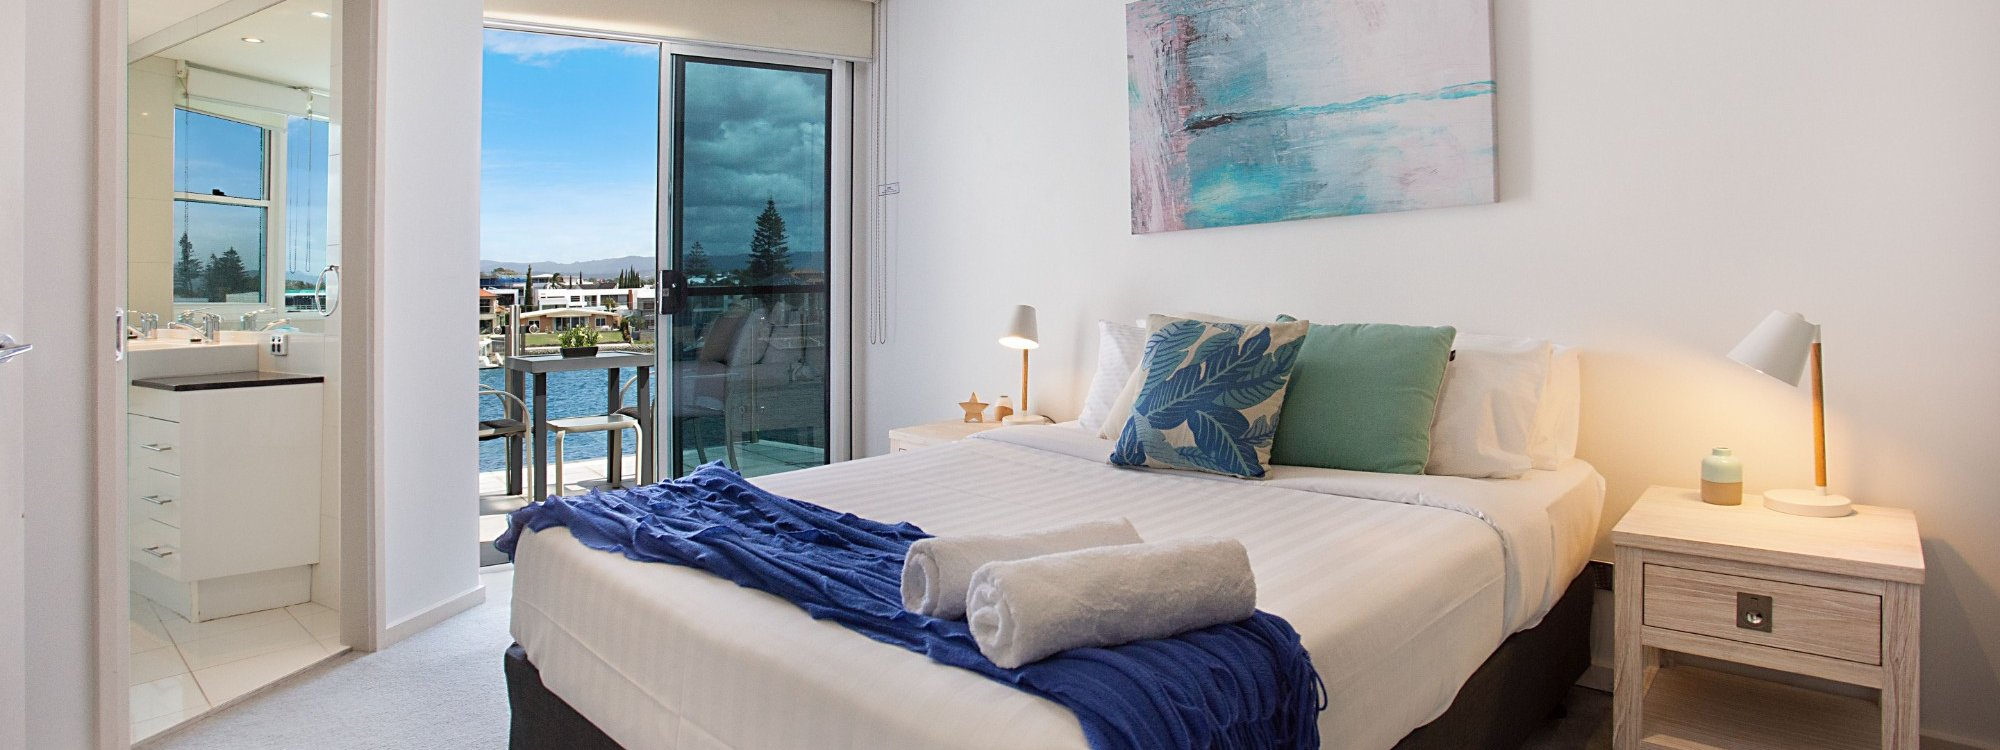 Casa Grande on the Water - Surfers Paradise - Bedroom